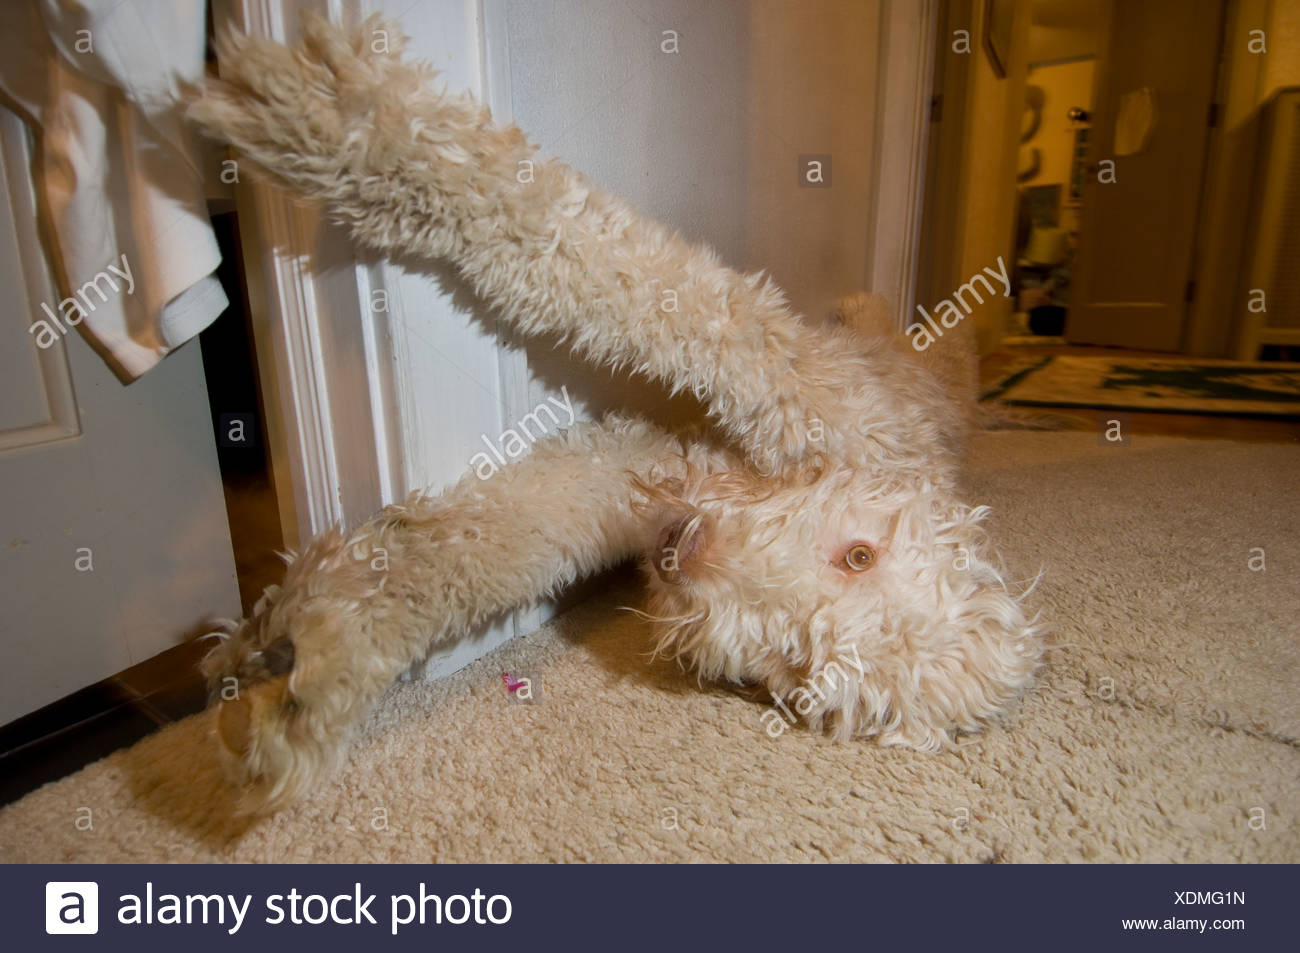 Une fantaisie doodle dog s'étend. Photo Stock